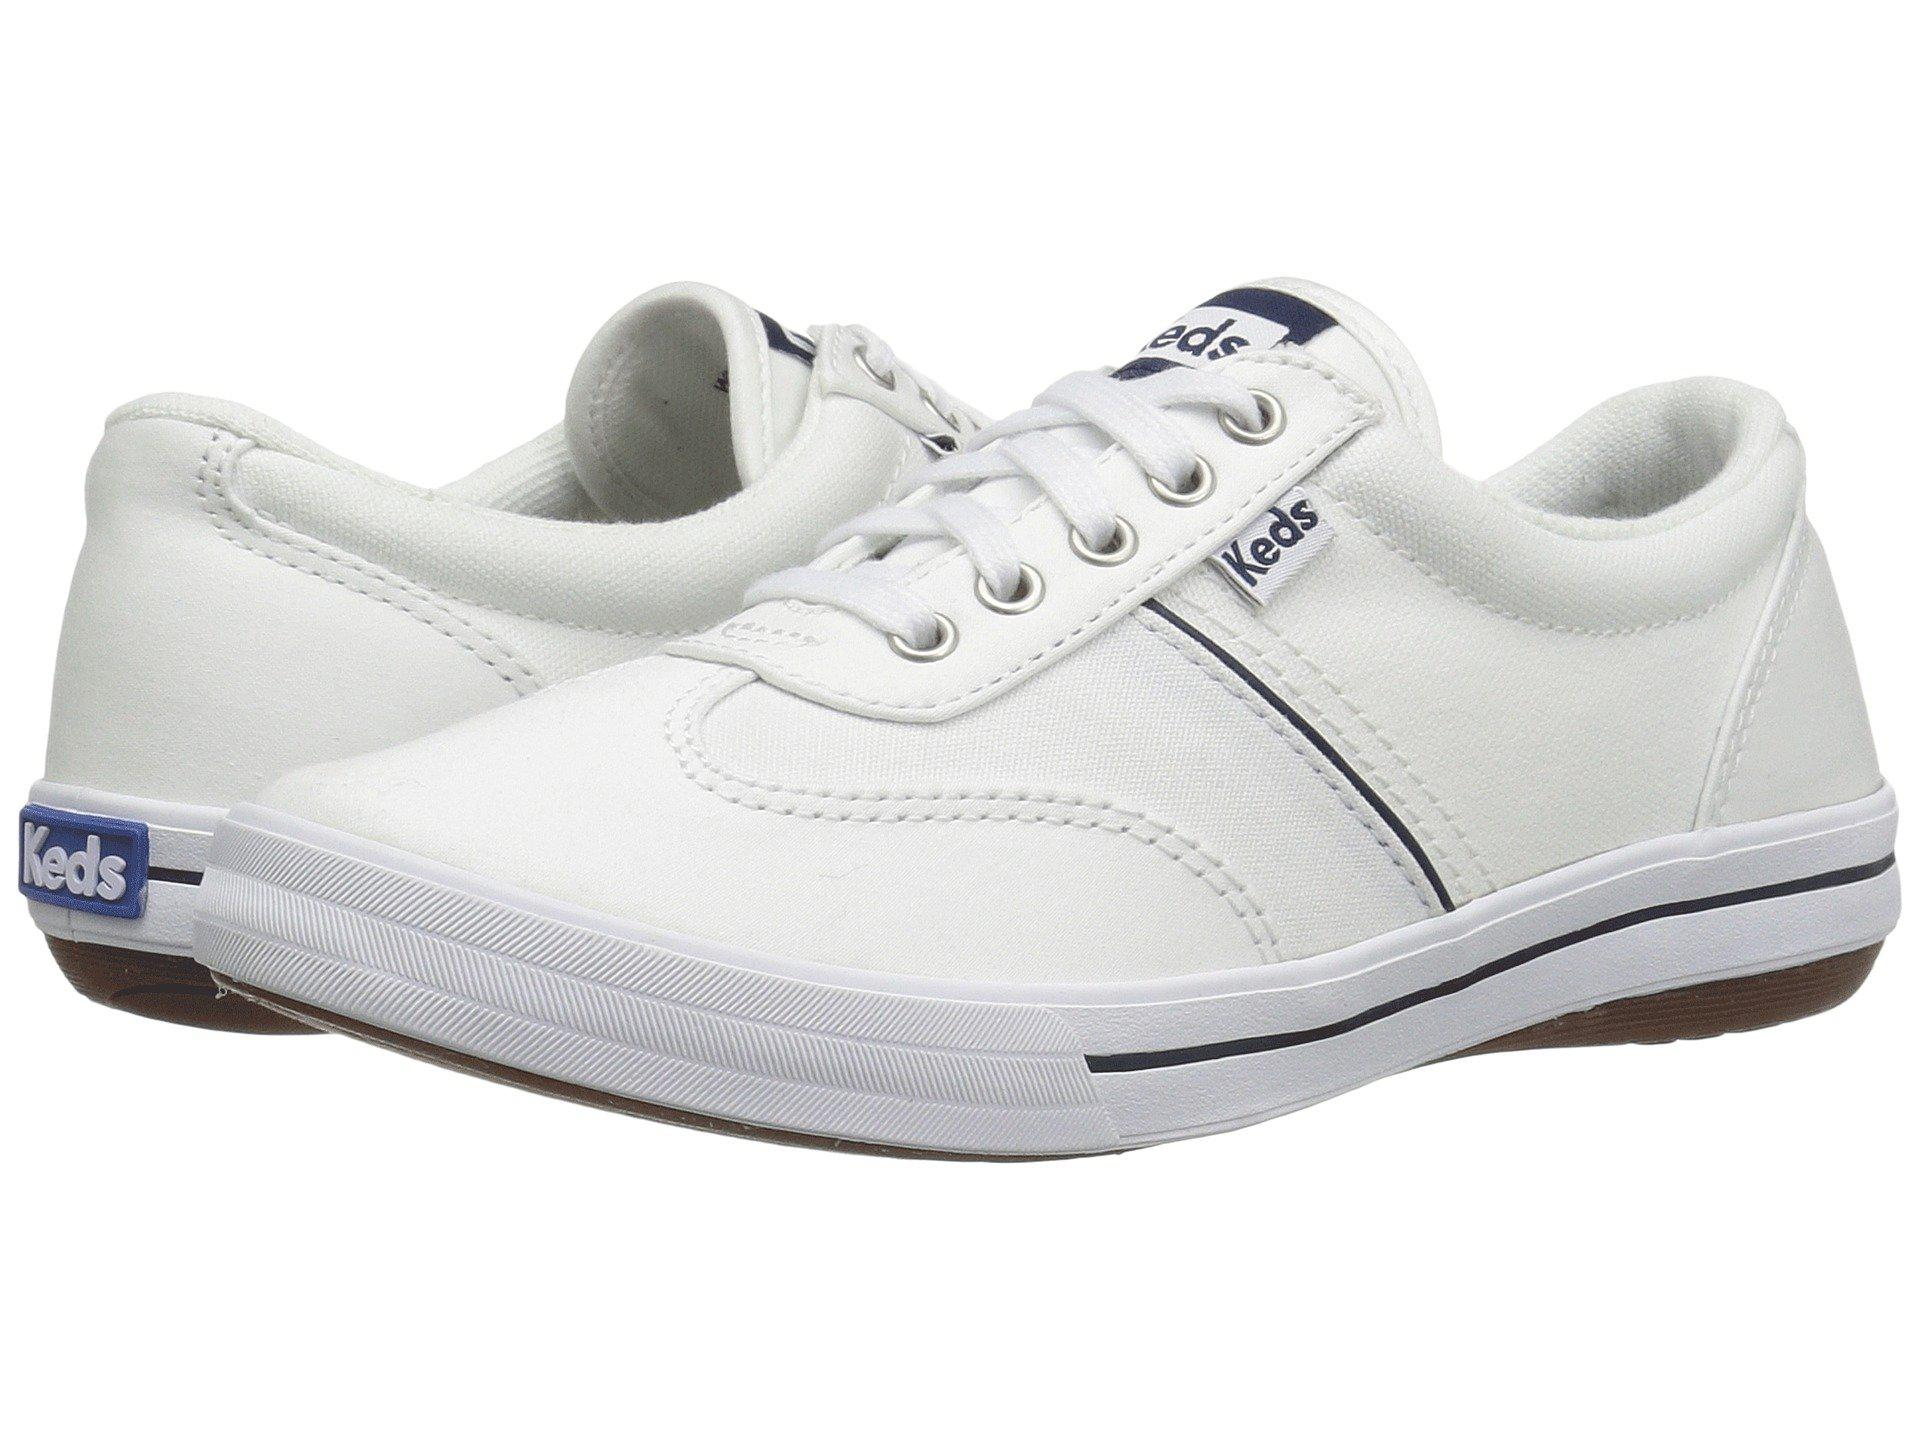 25c5b558ca56 Lyst - Keds Craze Ii Canvas (white Twill) Women s Lace Up Casual ...